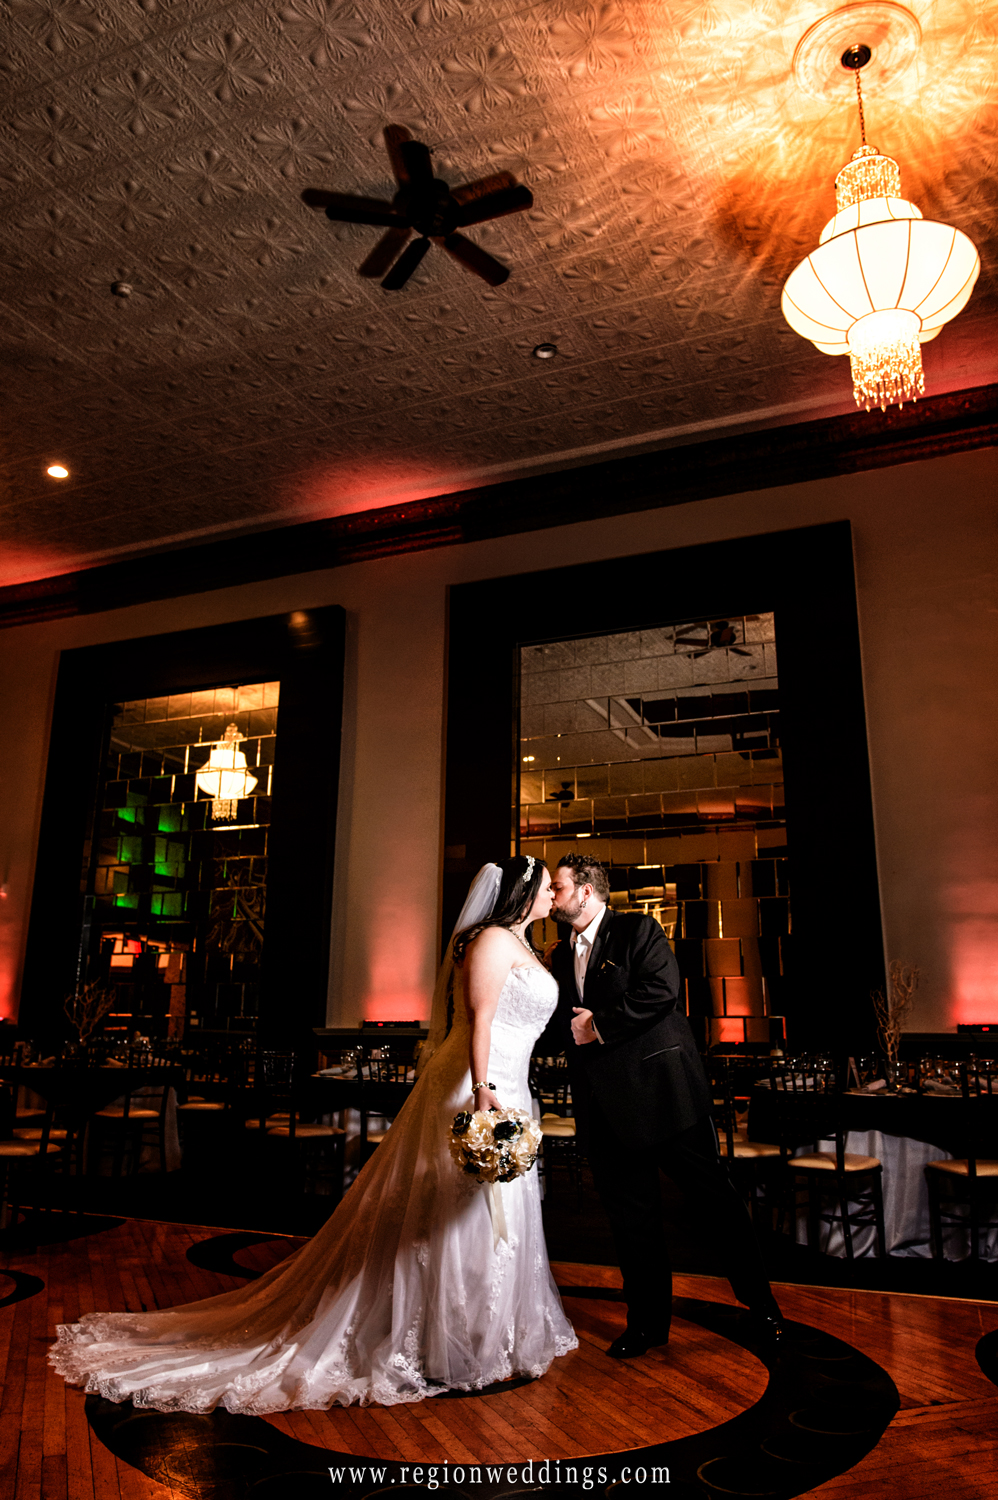 A kiss at the center of The Allure ballroom.